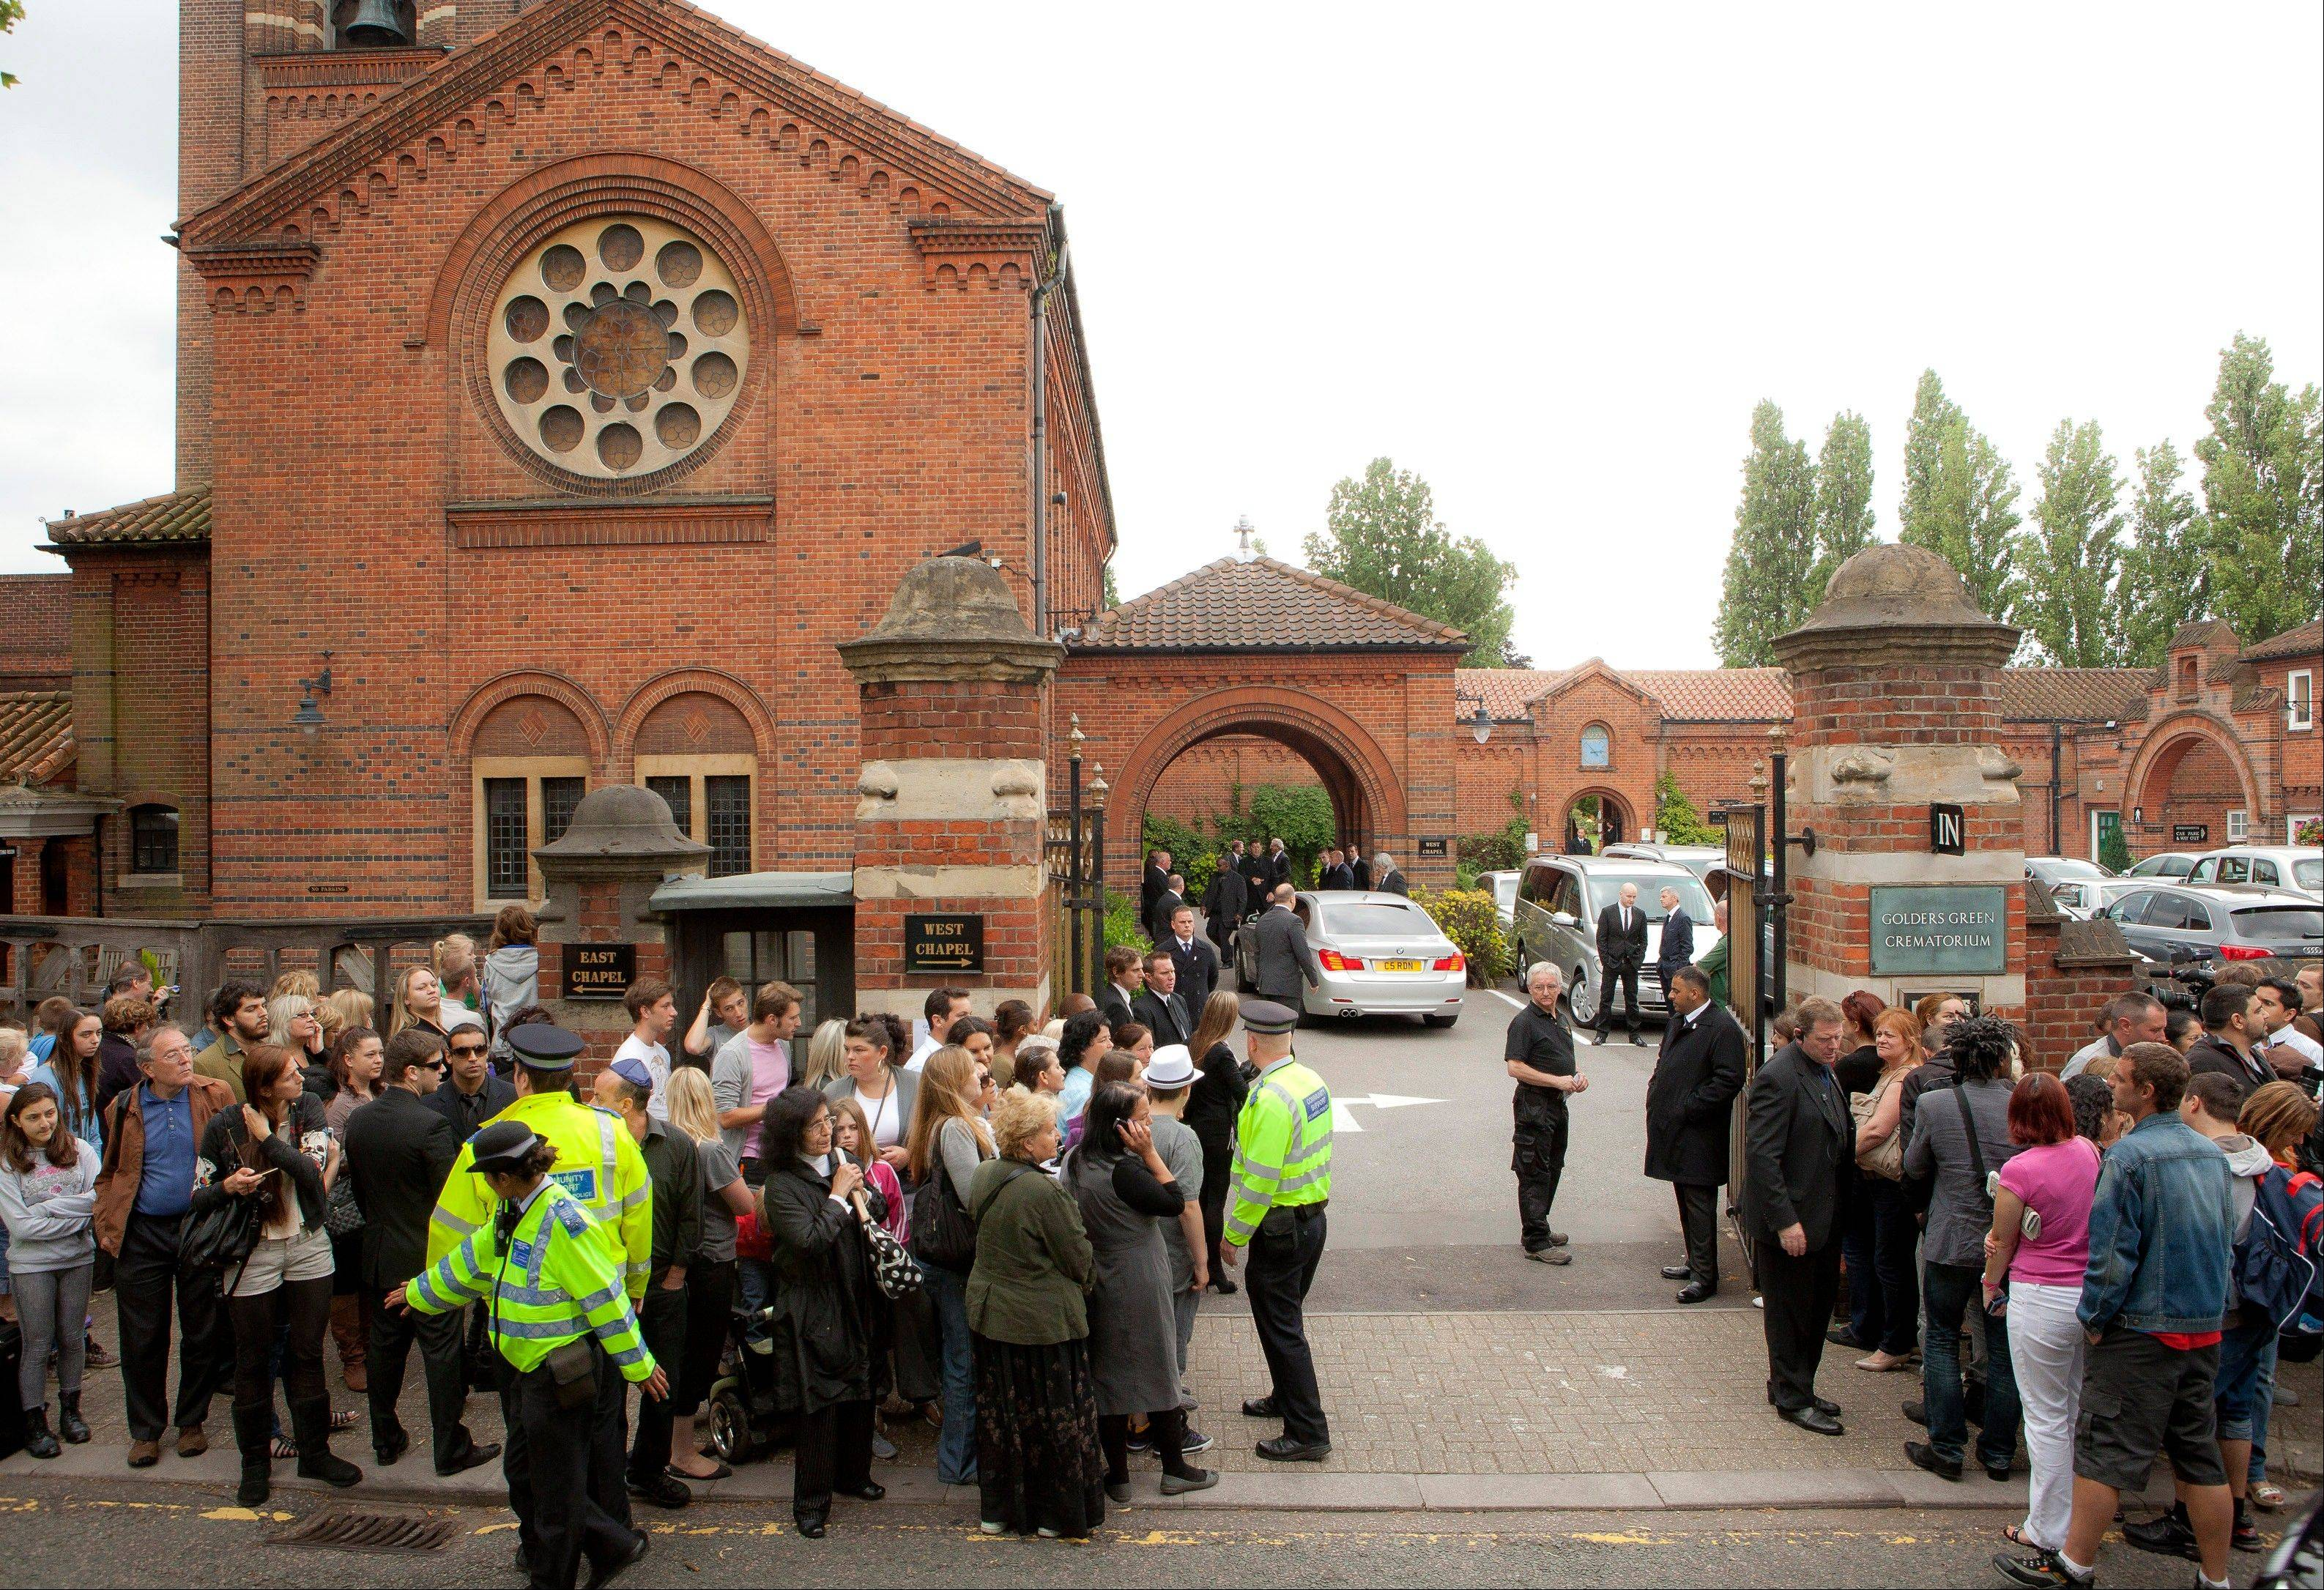 Members of the public gather opposite Golders Green Crematorium for the funeral ceremony of British singer Amy Winehouse, north London, Tuesday, July 26, 2011. Winehouse, who had battled alcohol and drug addiction, was found dead Saturday at her London home. She was 27.